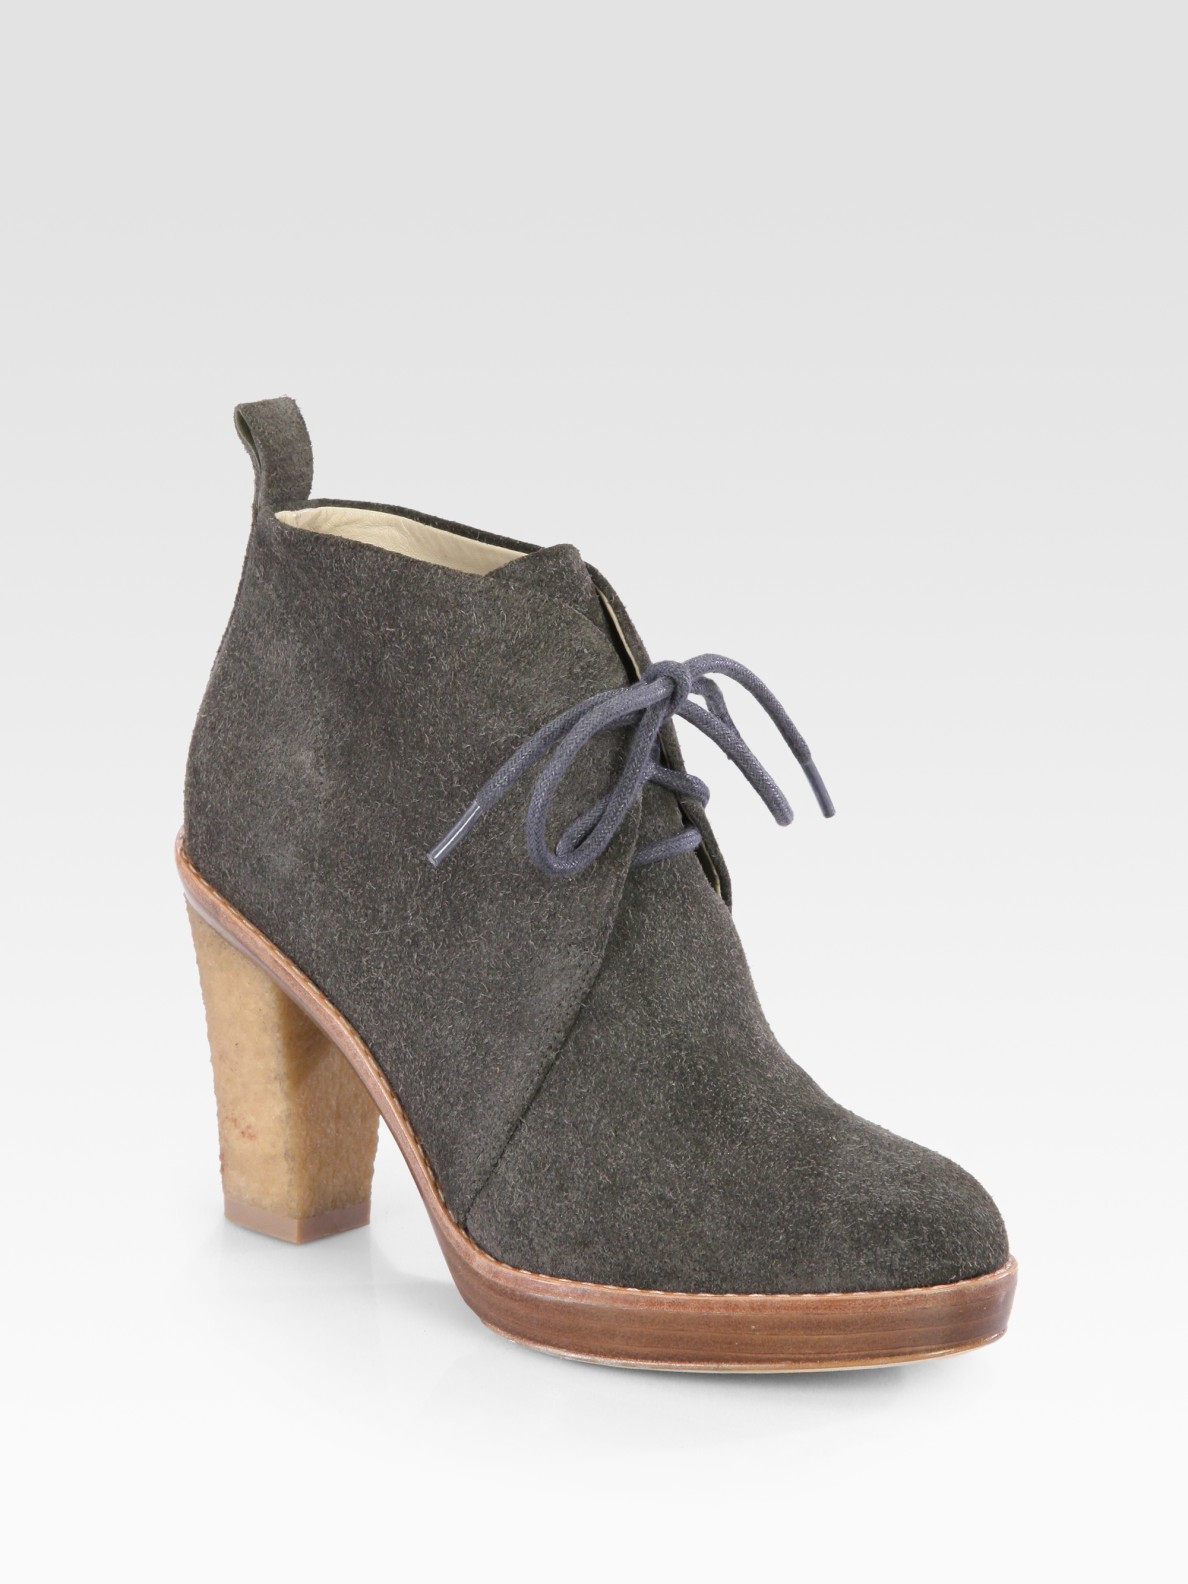 4f2652c417ac Lyst - Kors by Michael Kors Lena Suede Laceup Ankle Boots in Gray